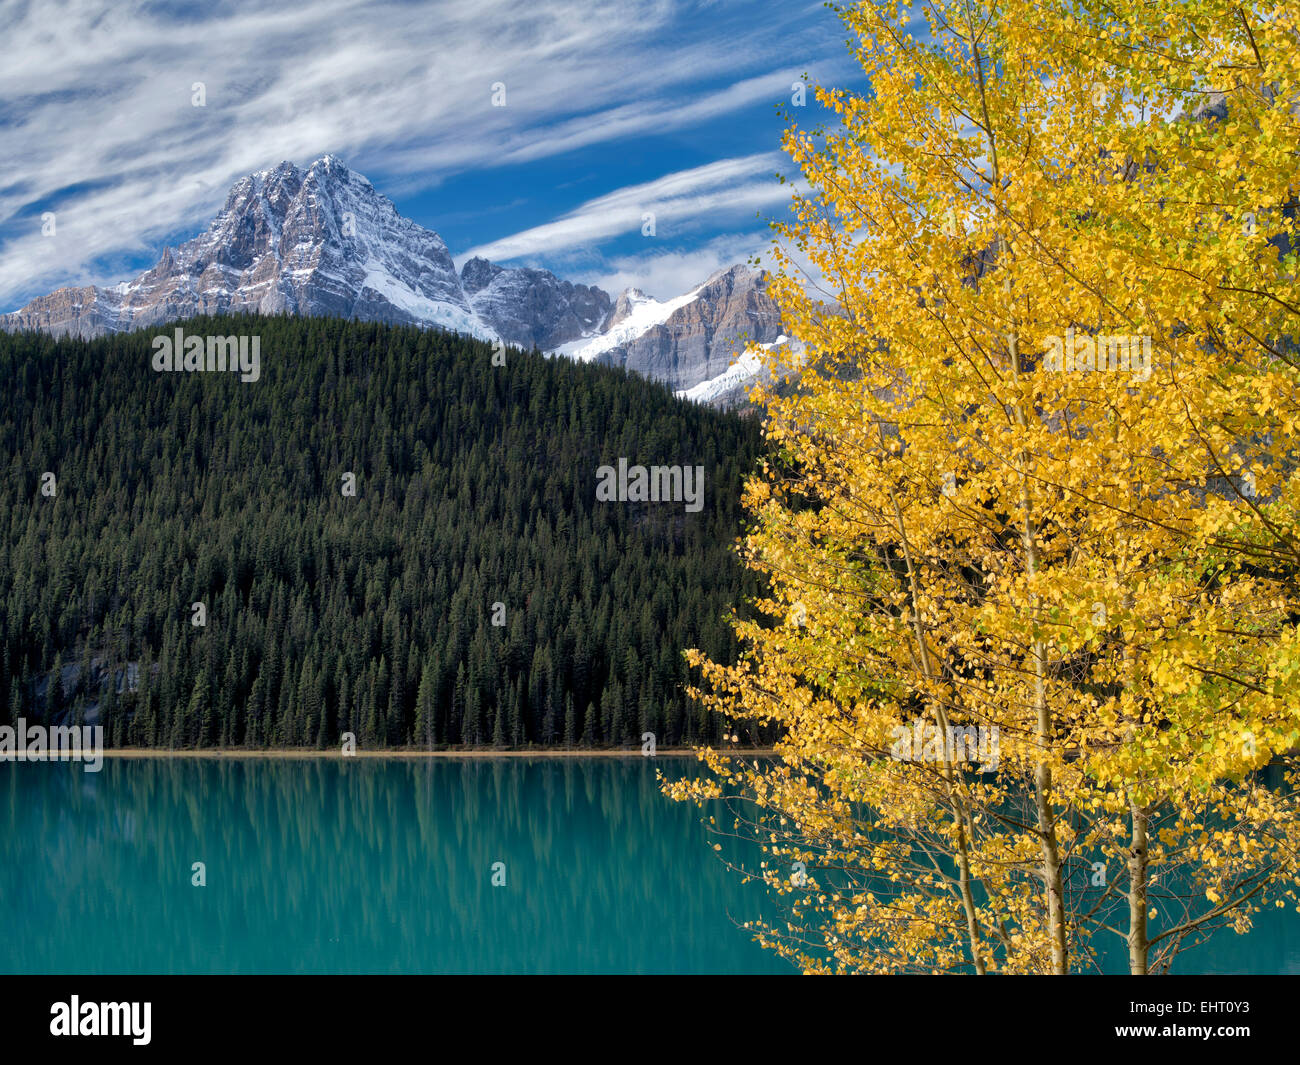 Waterfall Lakes and House Peake with fall colored aspens. Banff National Park. Alberta, Canada Stock Photo